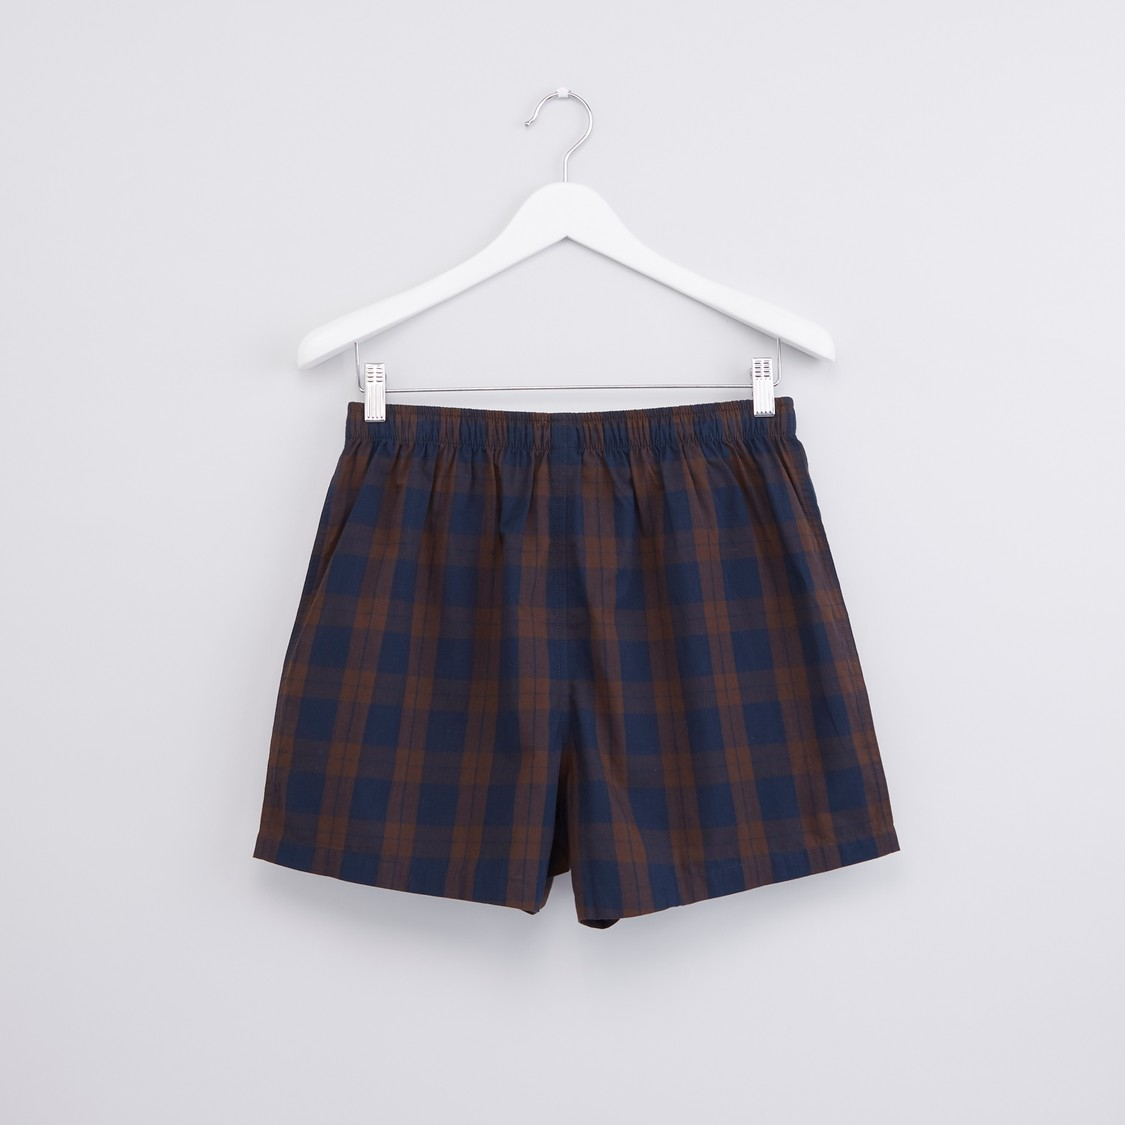 Chequered Boxer Briefs with Elasticised Waistband - Set of 2